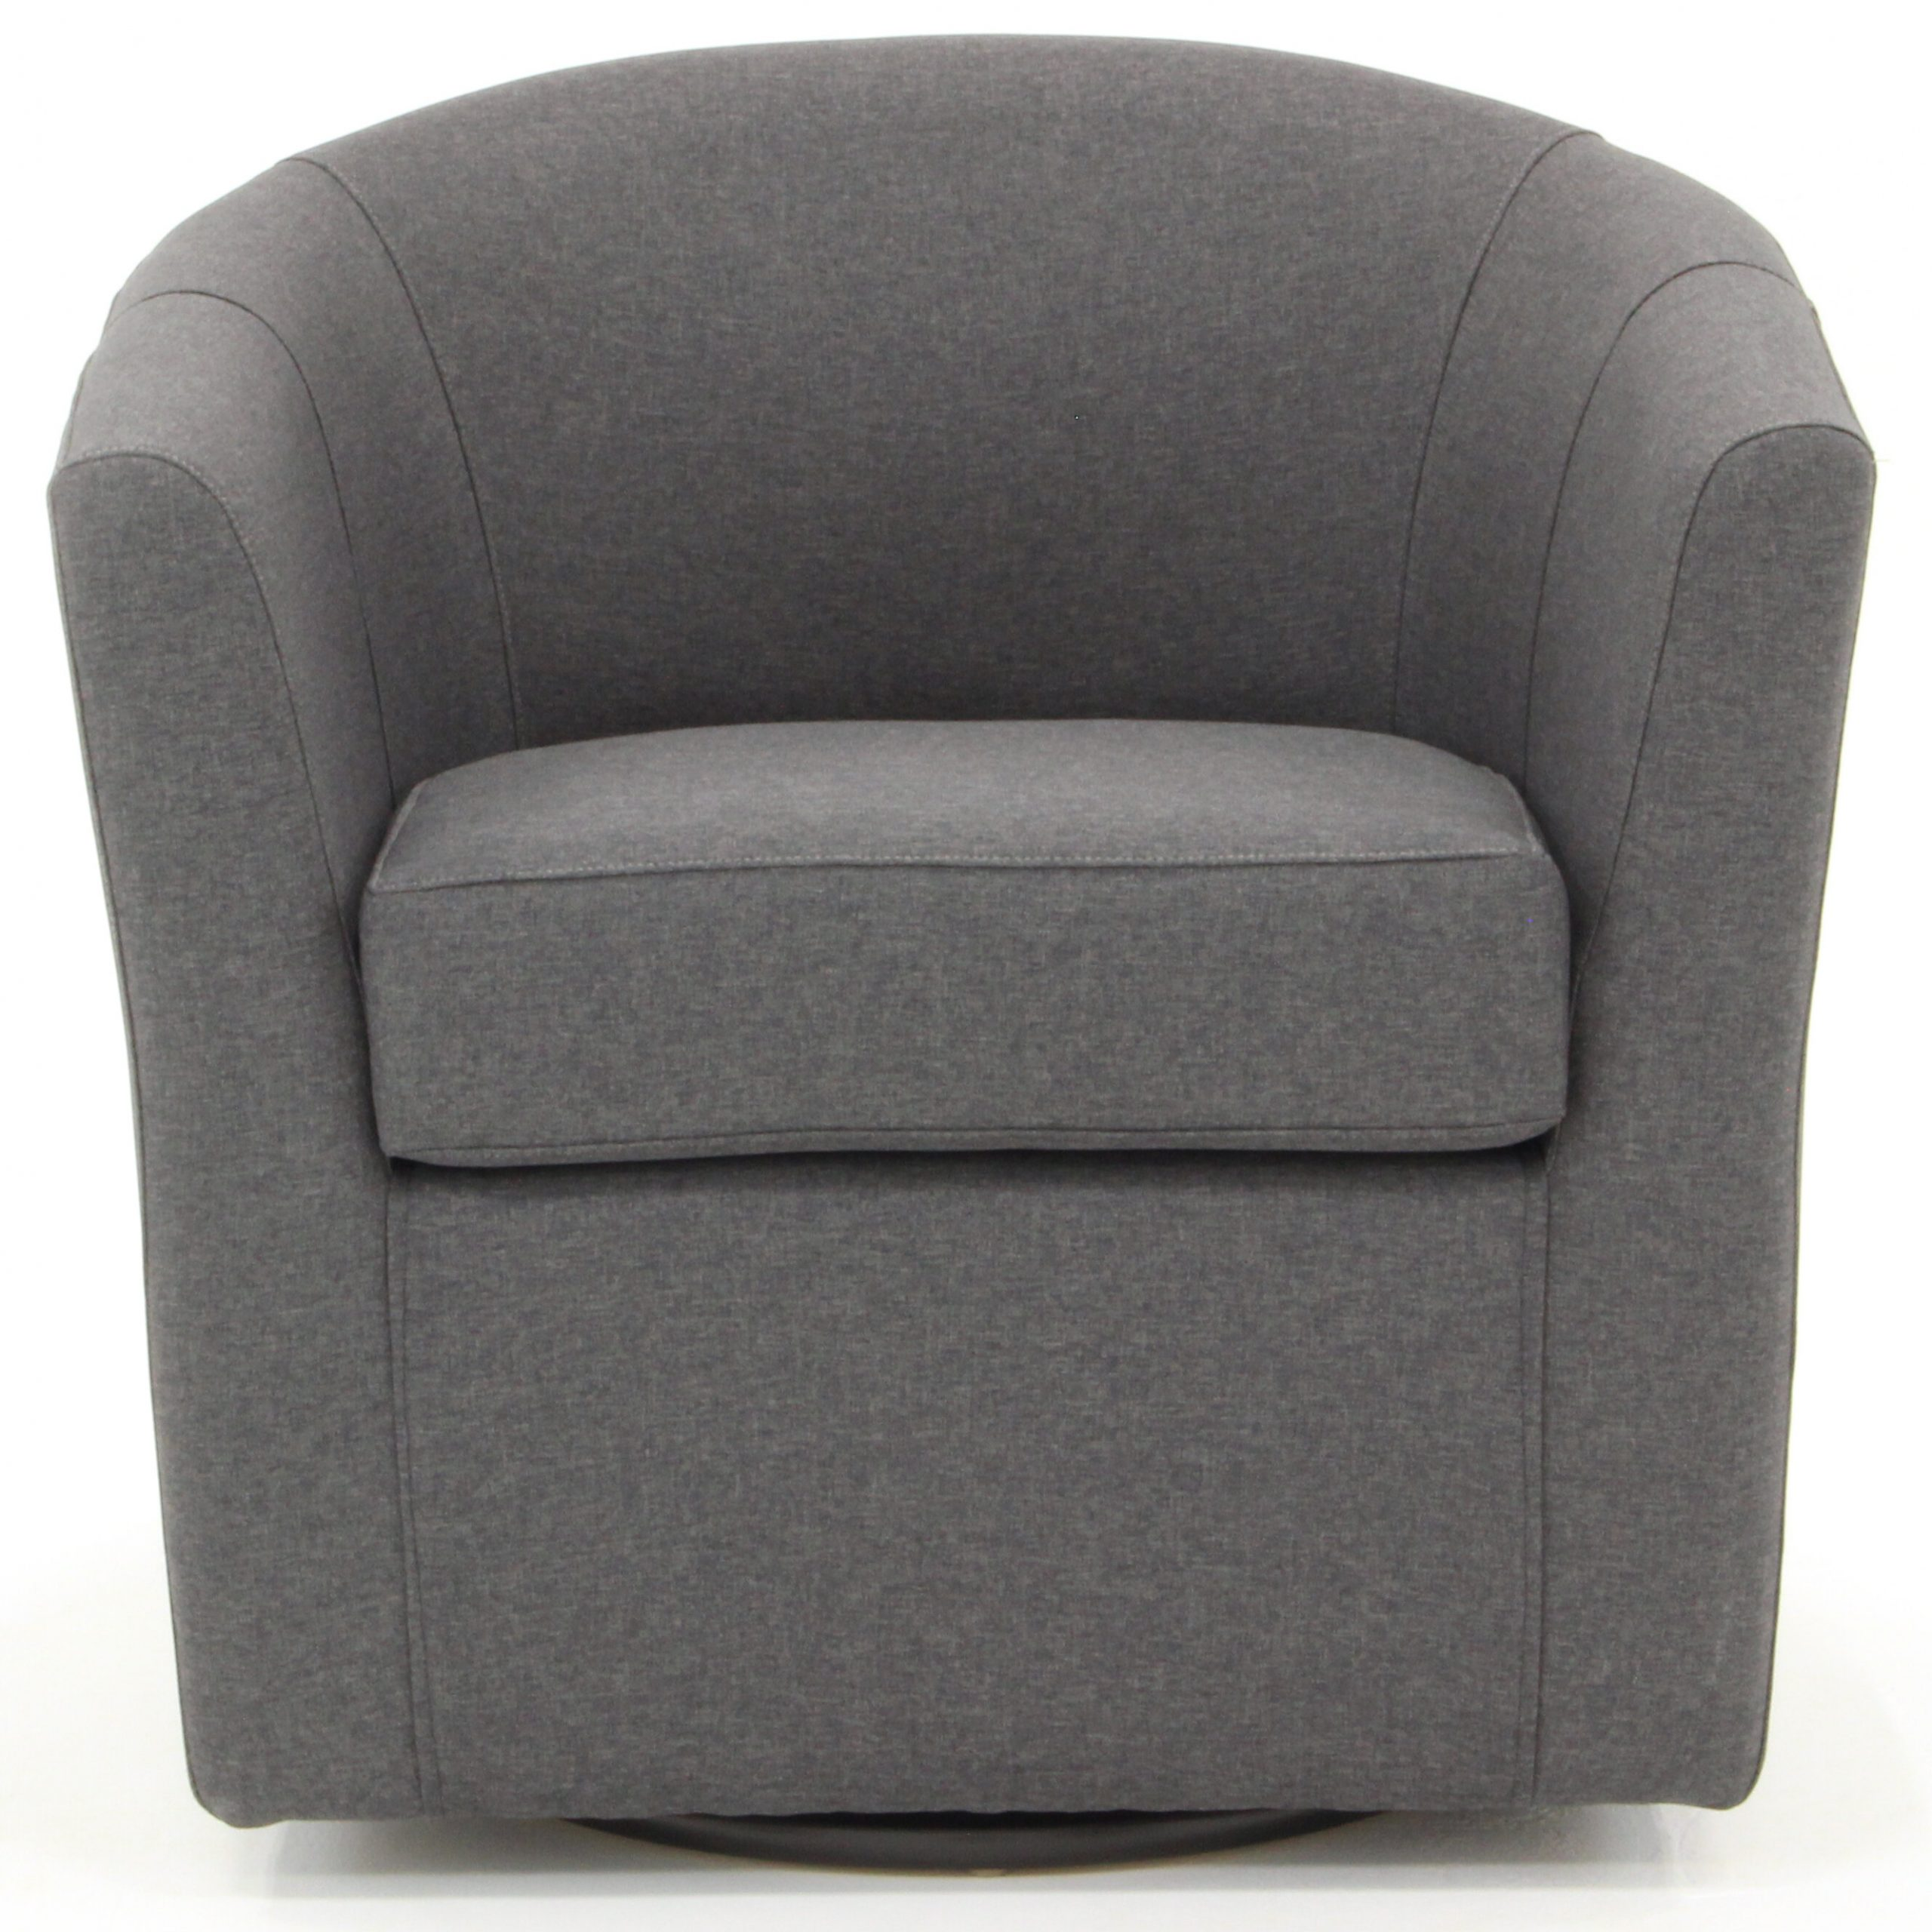 Ebern Designs Molinari Swivel Barrel Chair & Reviews | Wayfair For Danow Polyester Barrel Chairs (View 9 of 15)